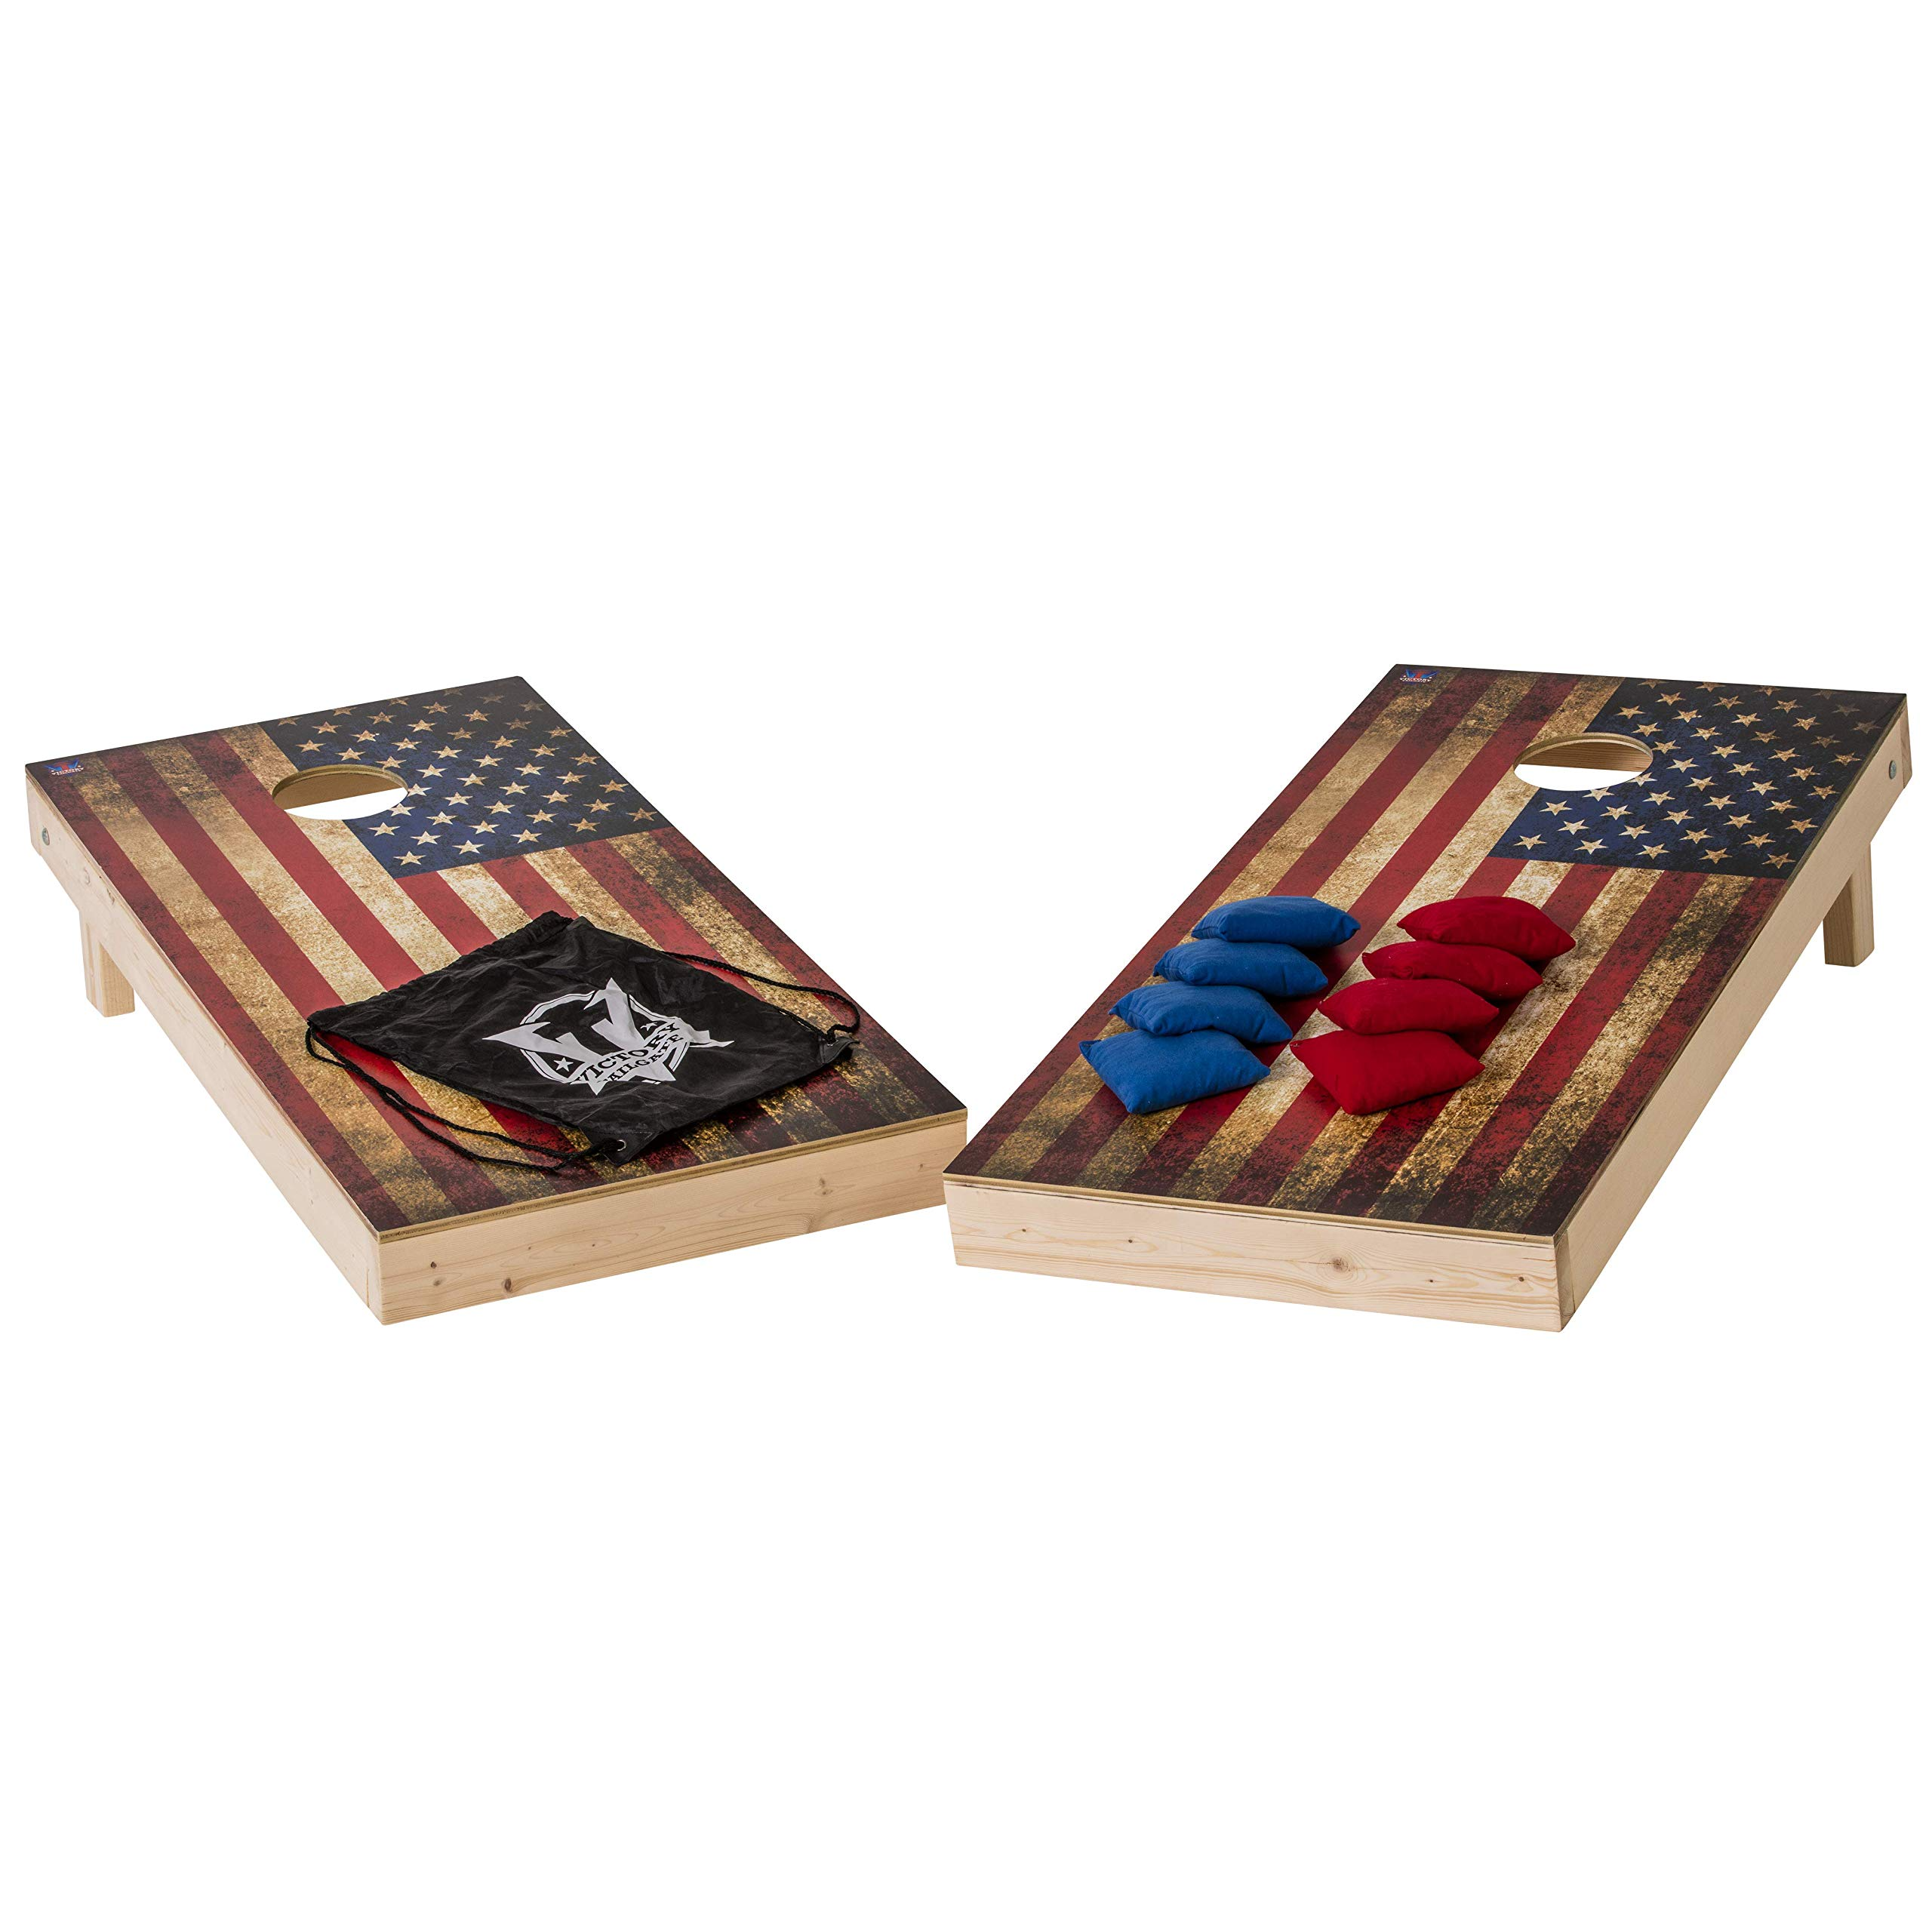 Victory Tailgate Vintage American Flag Cornhole Set - Two 2'x4' Boards, Eight 6x6, 16oz Bags, 1 Drawstring Carry Case for Bags by Victory Tailgate